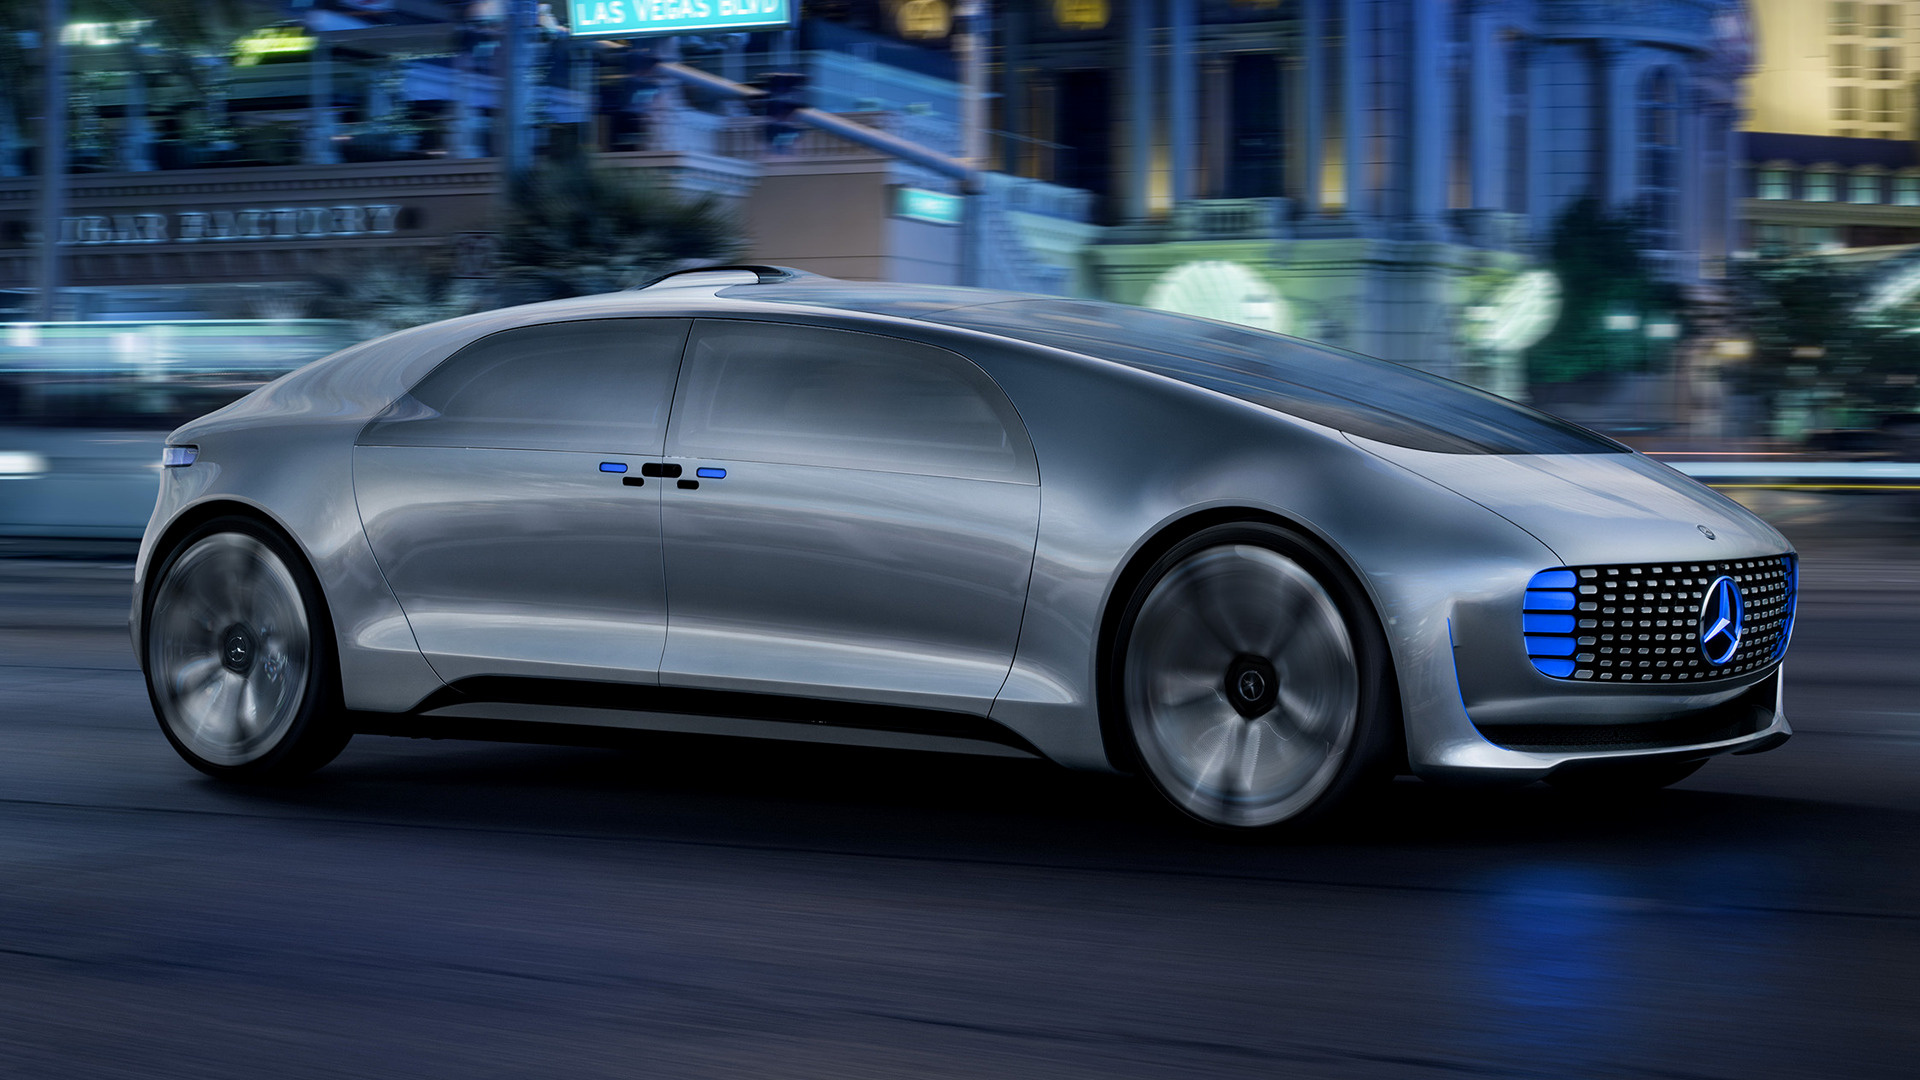 Mercedes Benz F 015 Luxury In Motion 2015 Wallpapers And